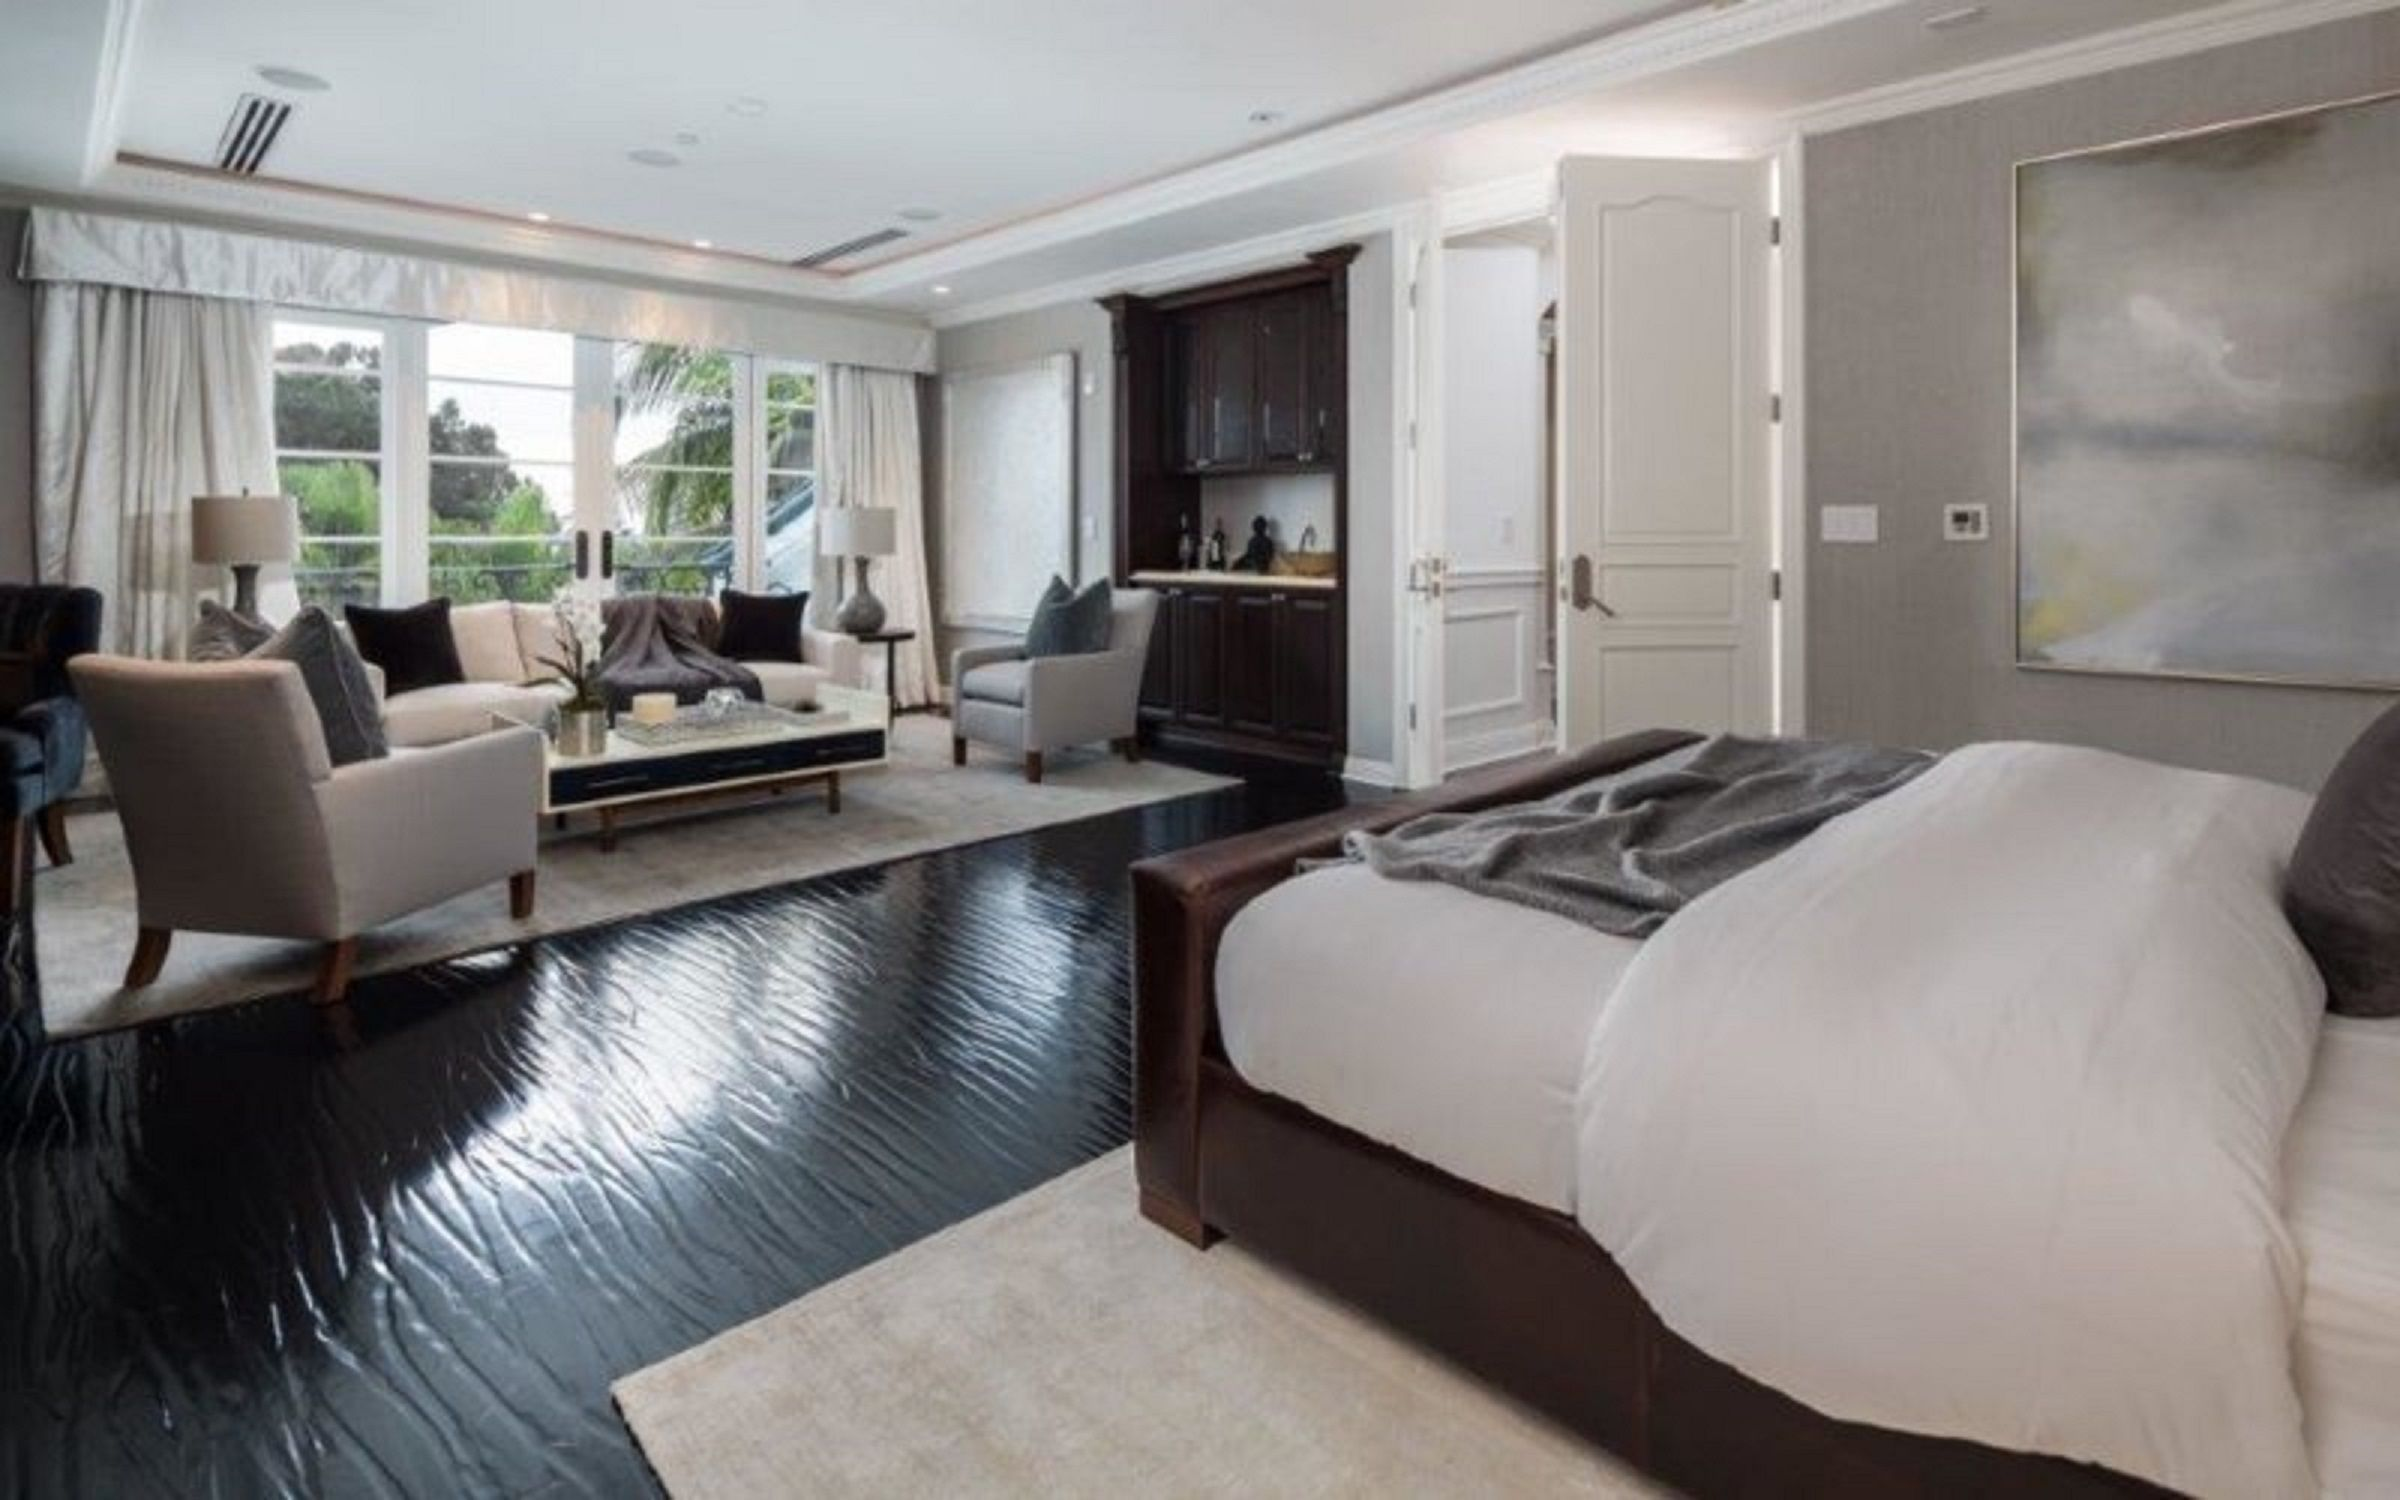 Master Bedroom Ensuite Designs Alluring Master Bedroom With Sitting Are And Ensuite Bathroom In Beverly Design Inspiration